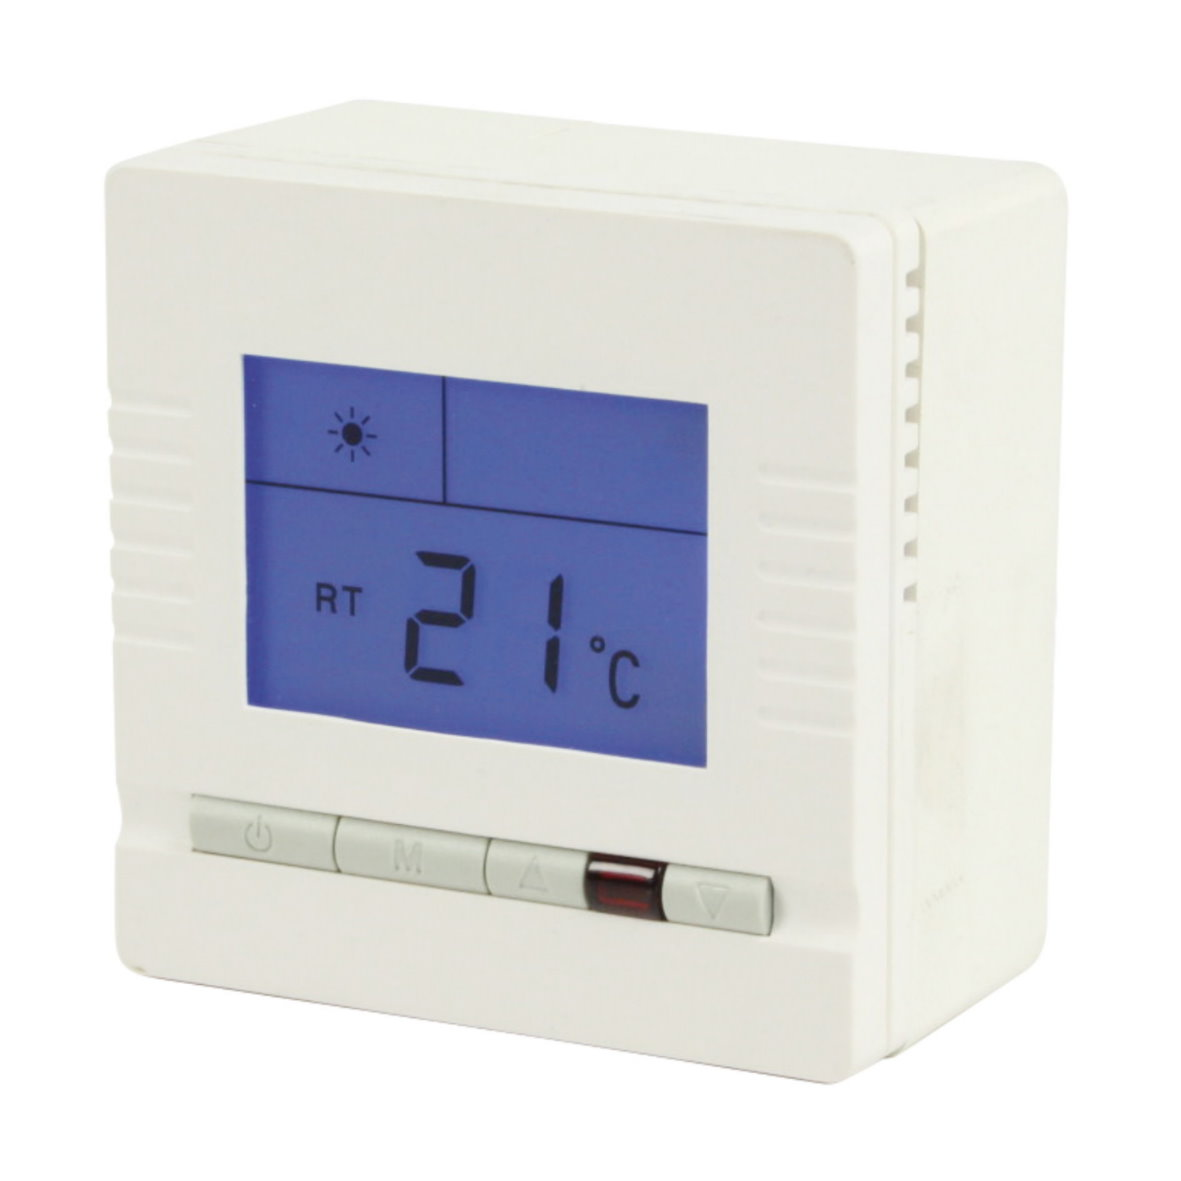 analoger digitaler raumthermostat heizung thermostat. Black Bedroom Furniture Sets. Home Design Ideas